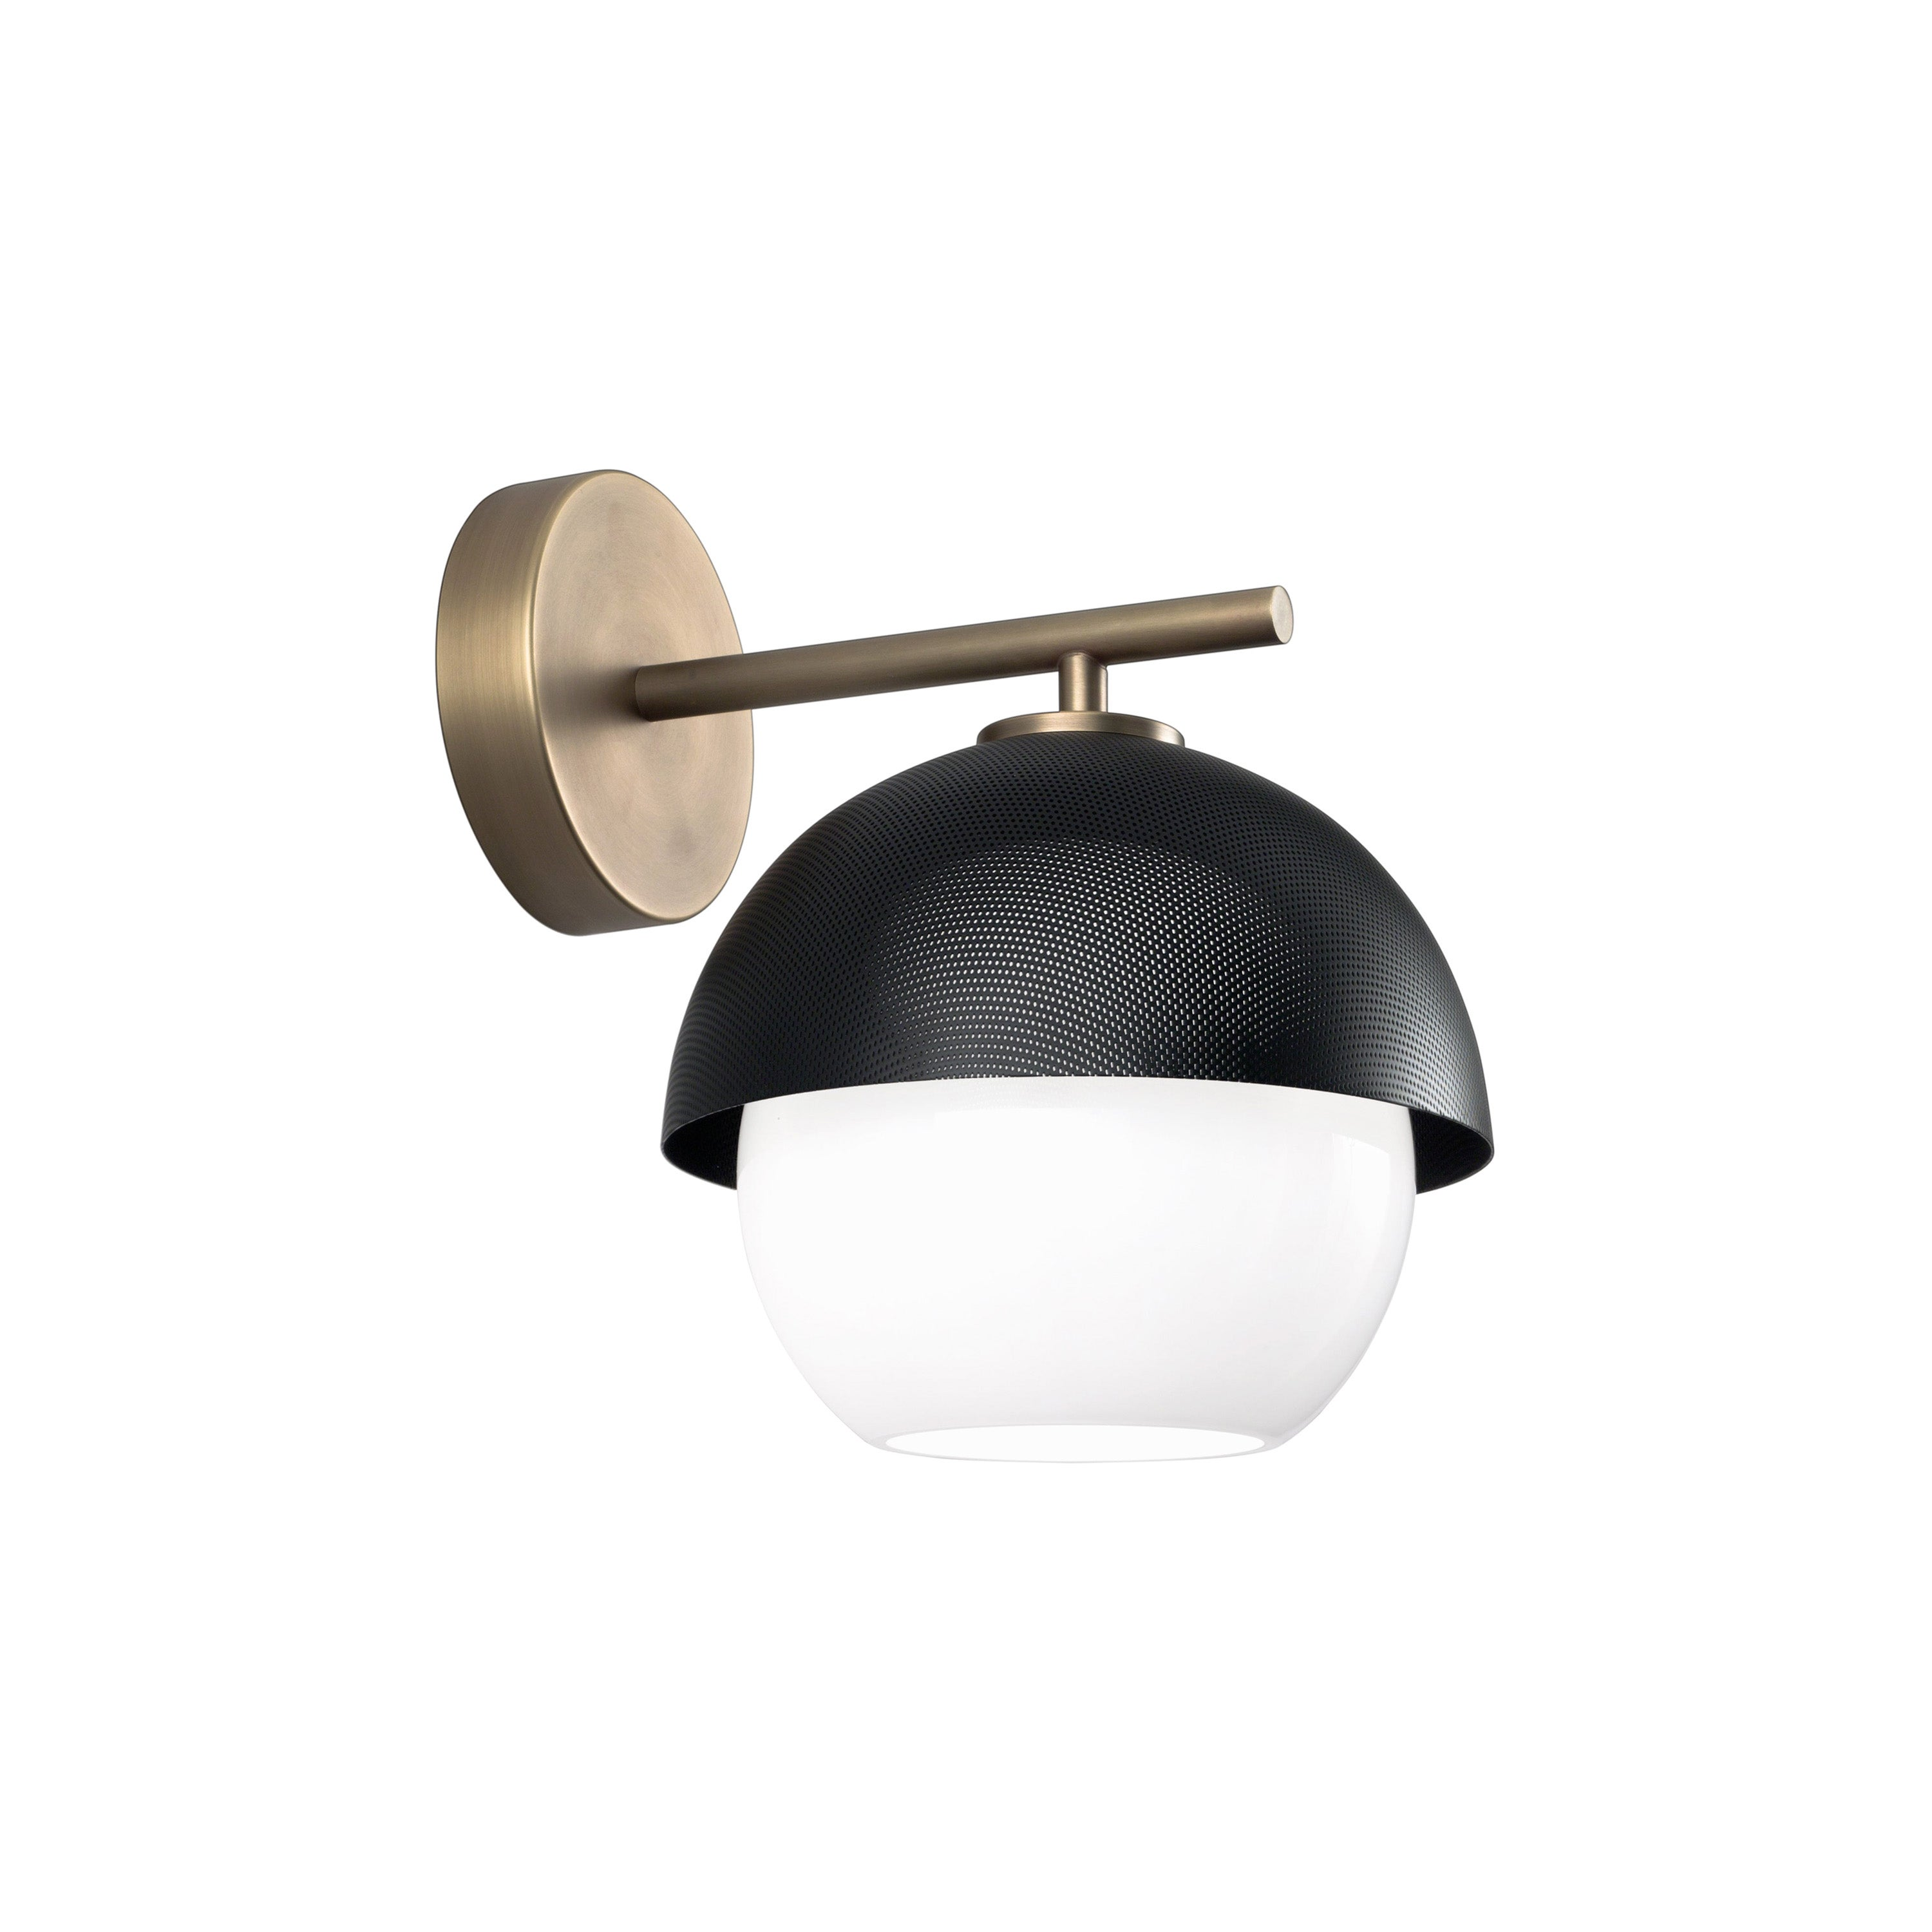 VeniceM Urban Wall Sconce in Light Burnished Brass by Massimo Tonetto